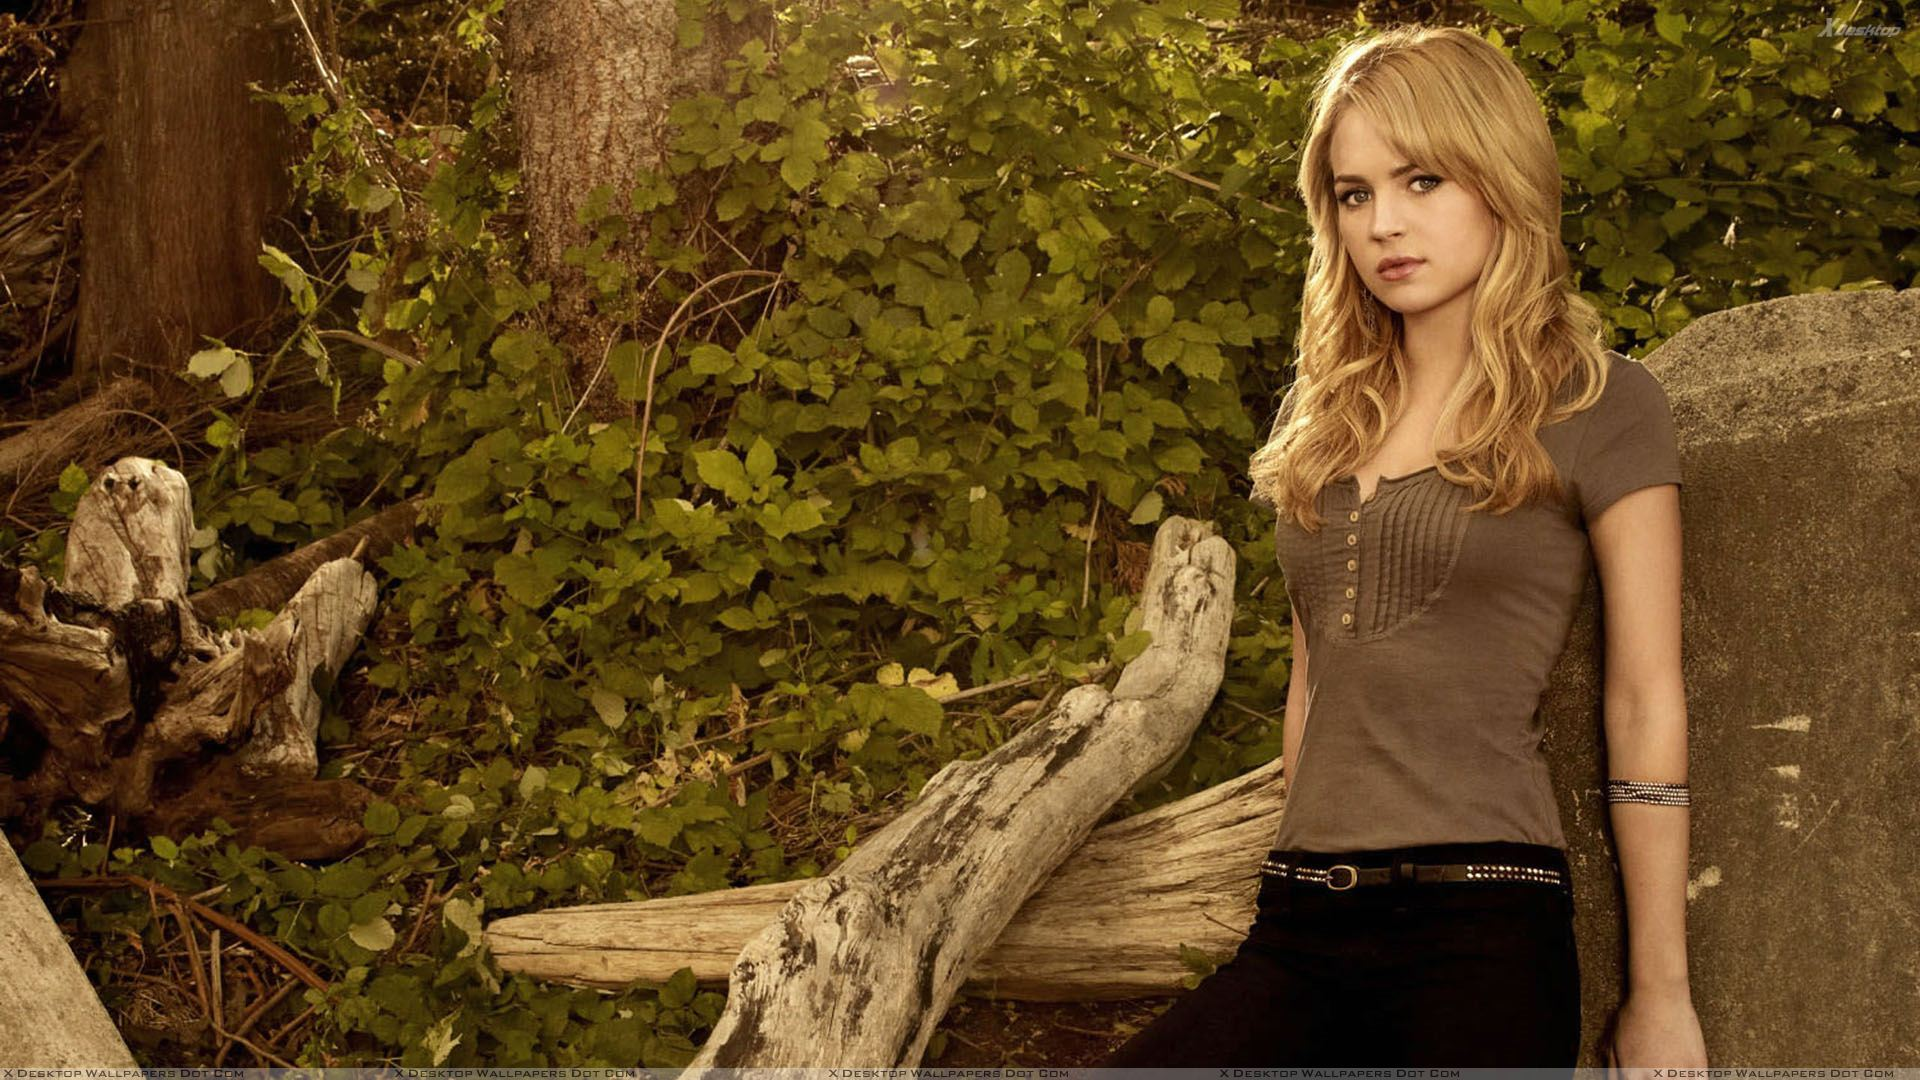 britt robertson in top n jeans sad pose wallpaper